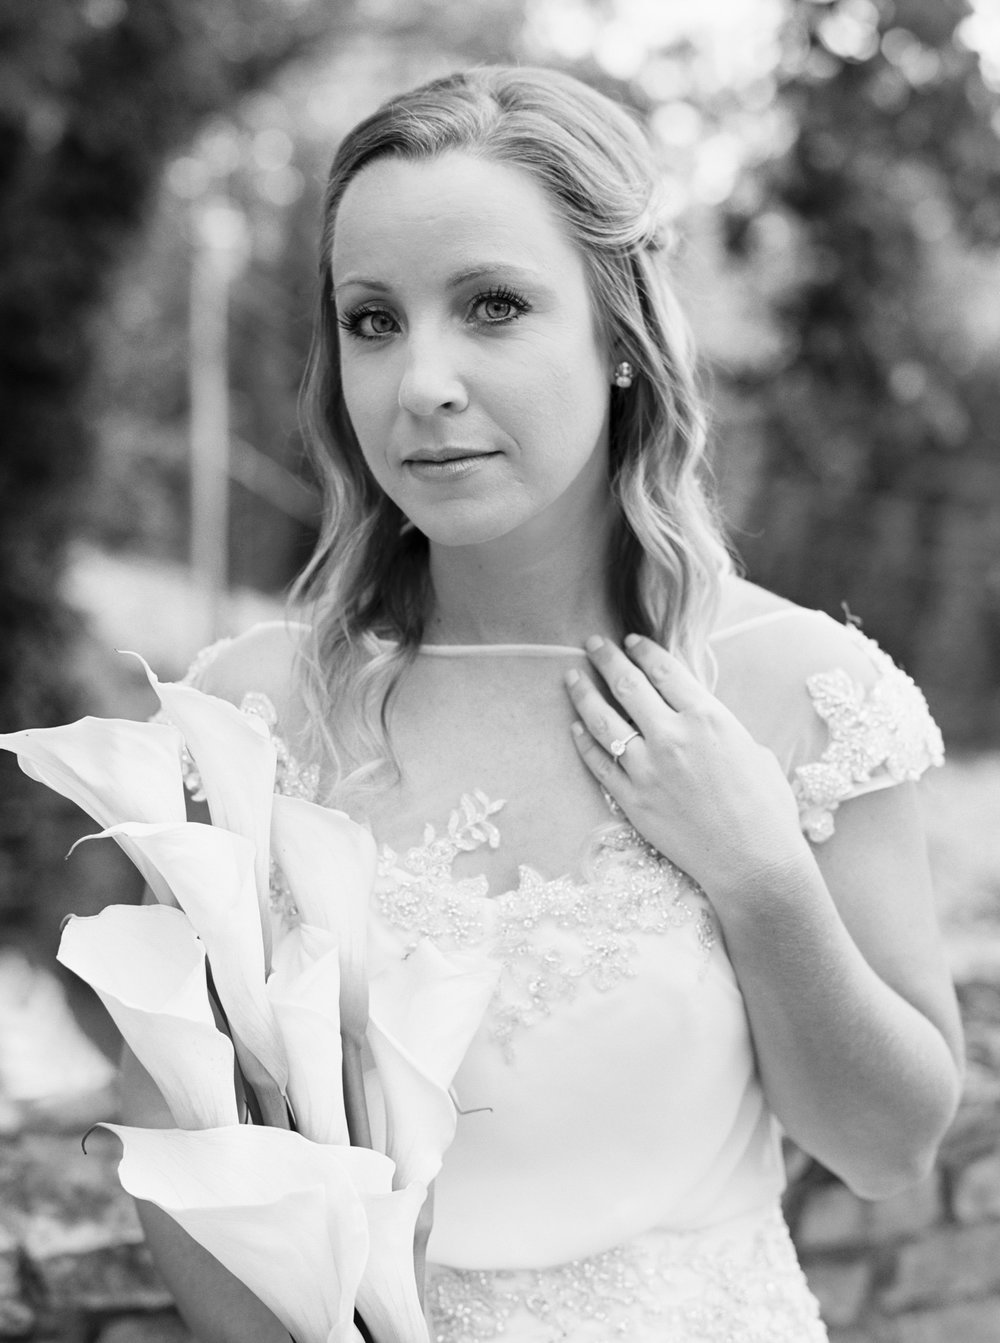 Katie_Matt_Wedding_Knoxville_Botanical_Garden_Abigail_Malone_photography-57.jpg